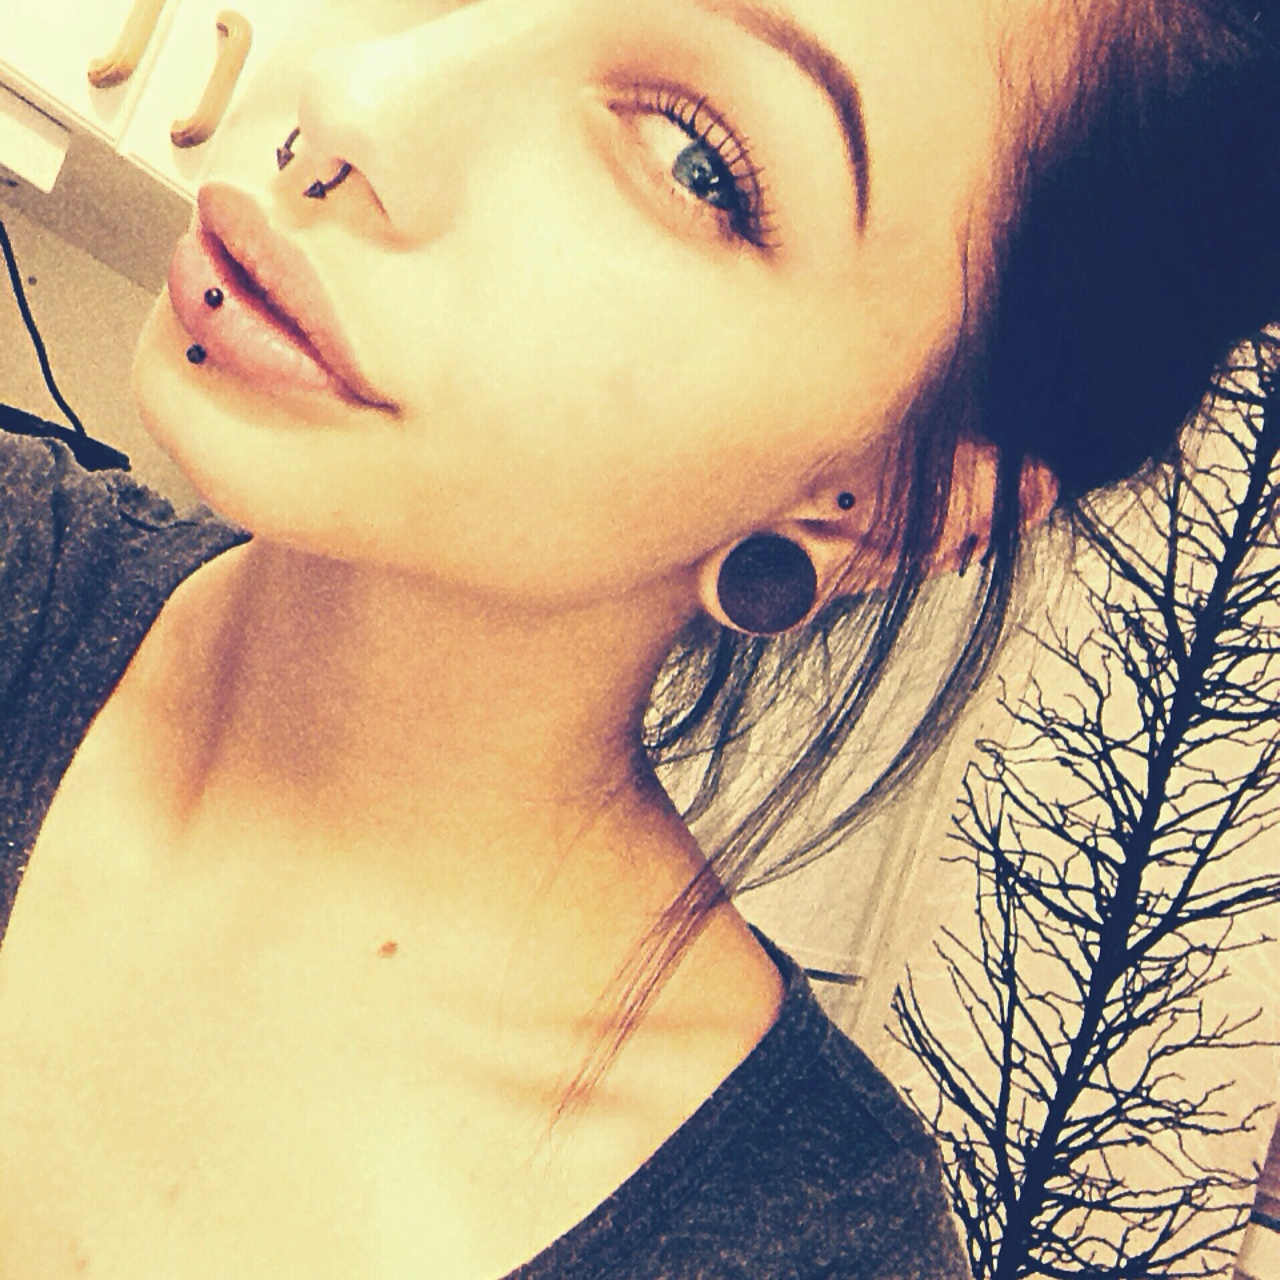 vertical labret | Tumblr discovered by @clemow1999